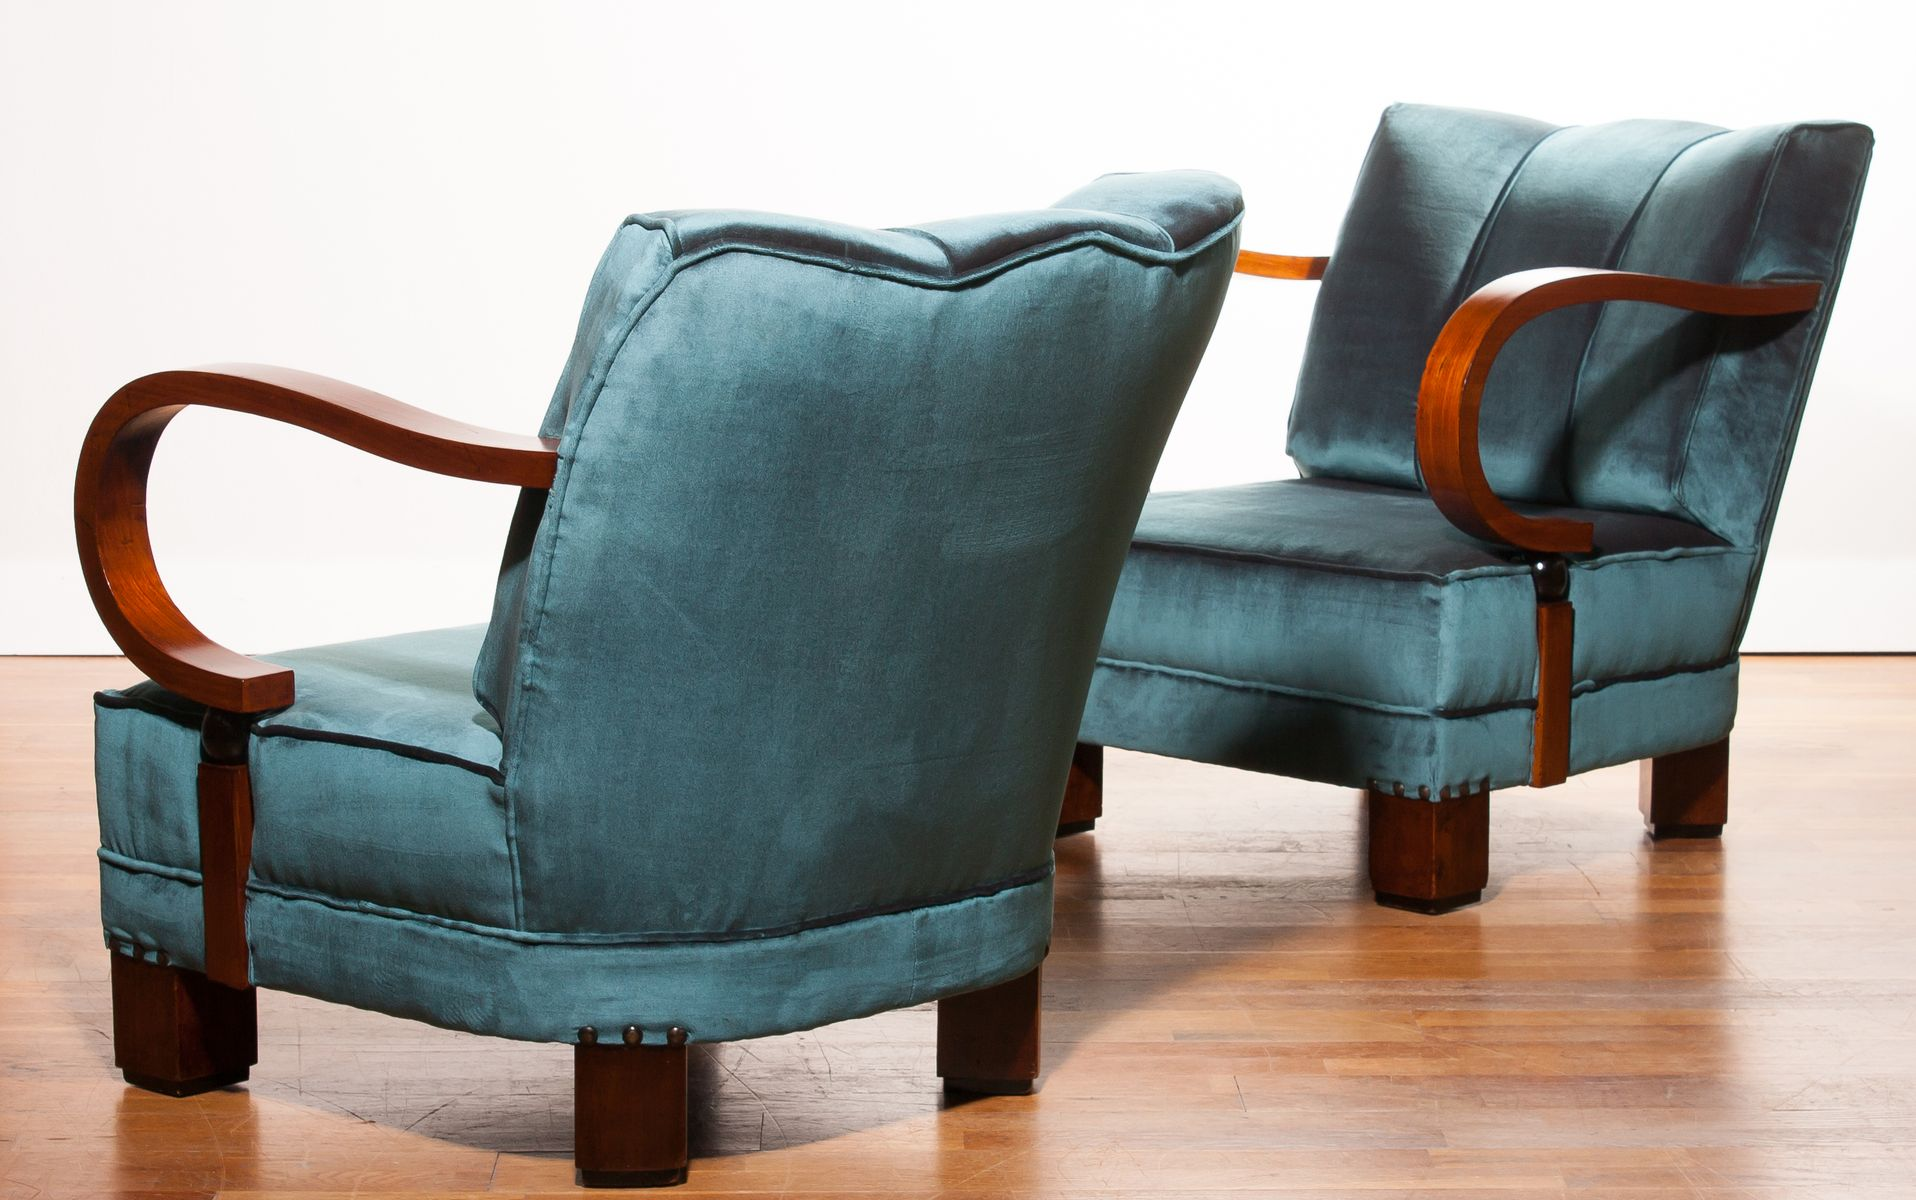 Art Deco Blue Velvet Chairs 1920s Set of 2 for sale at Pamono